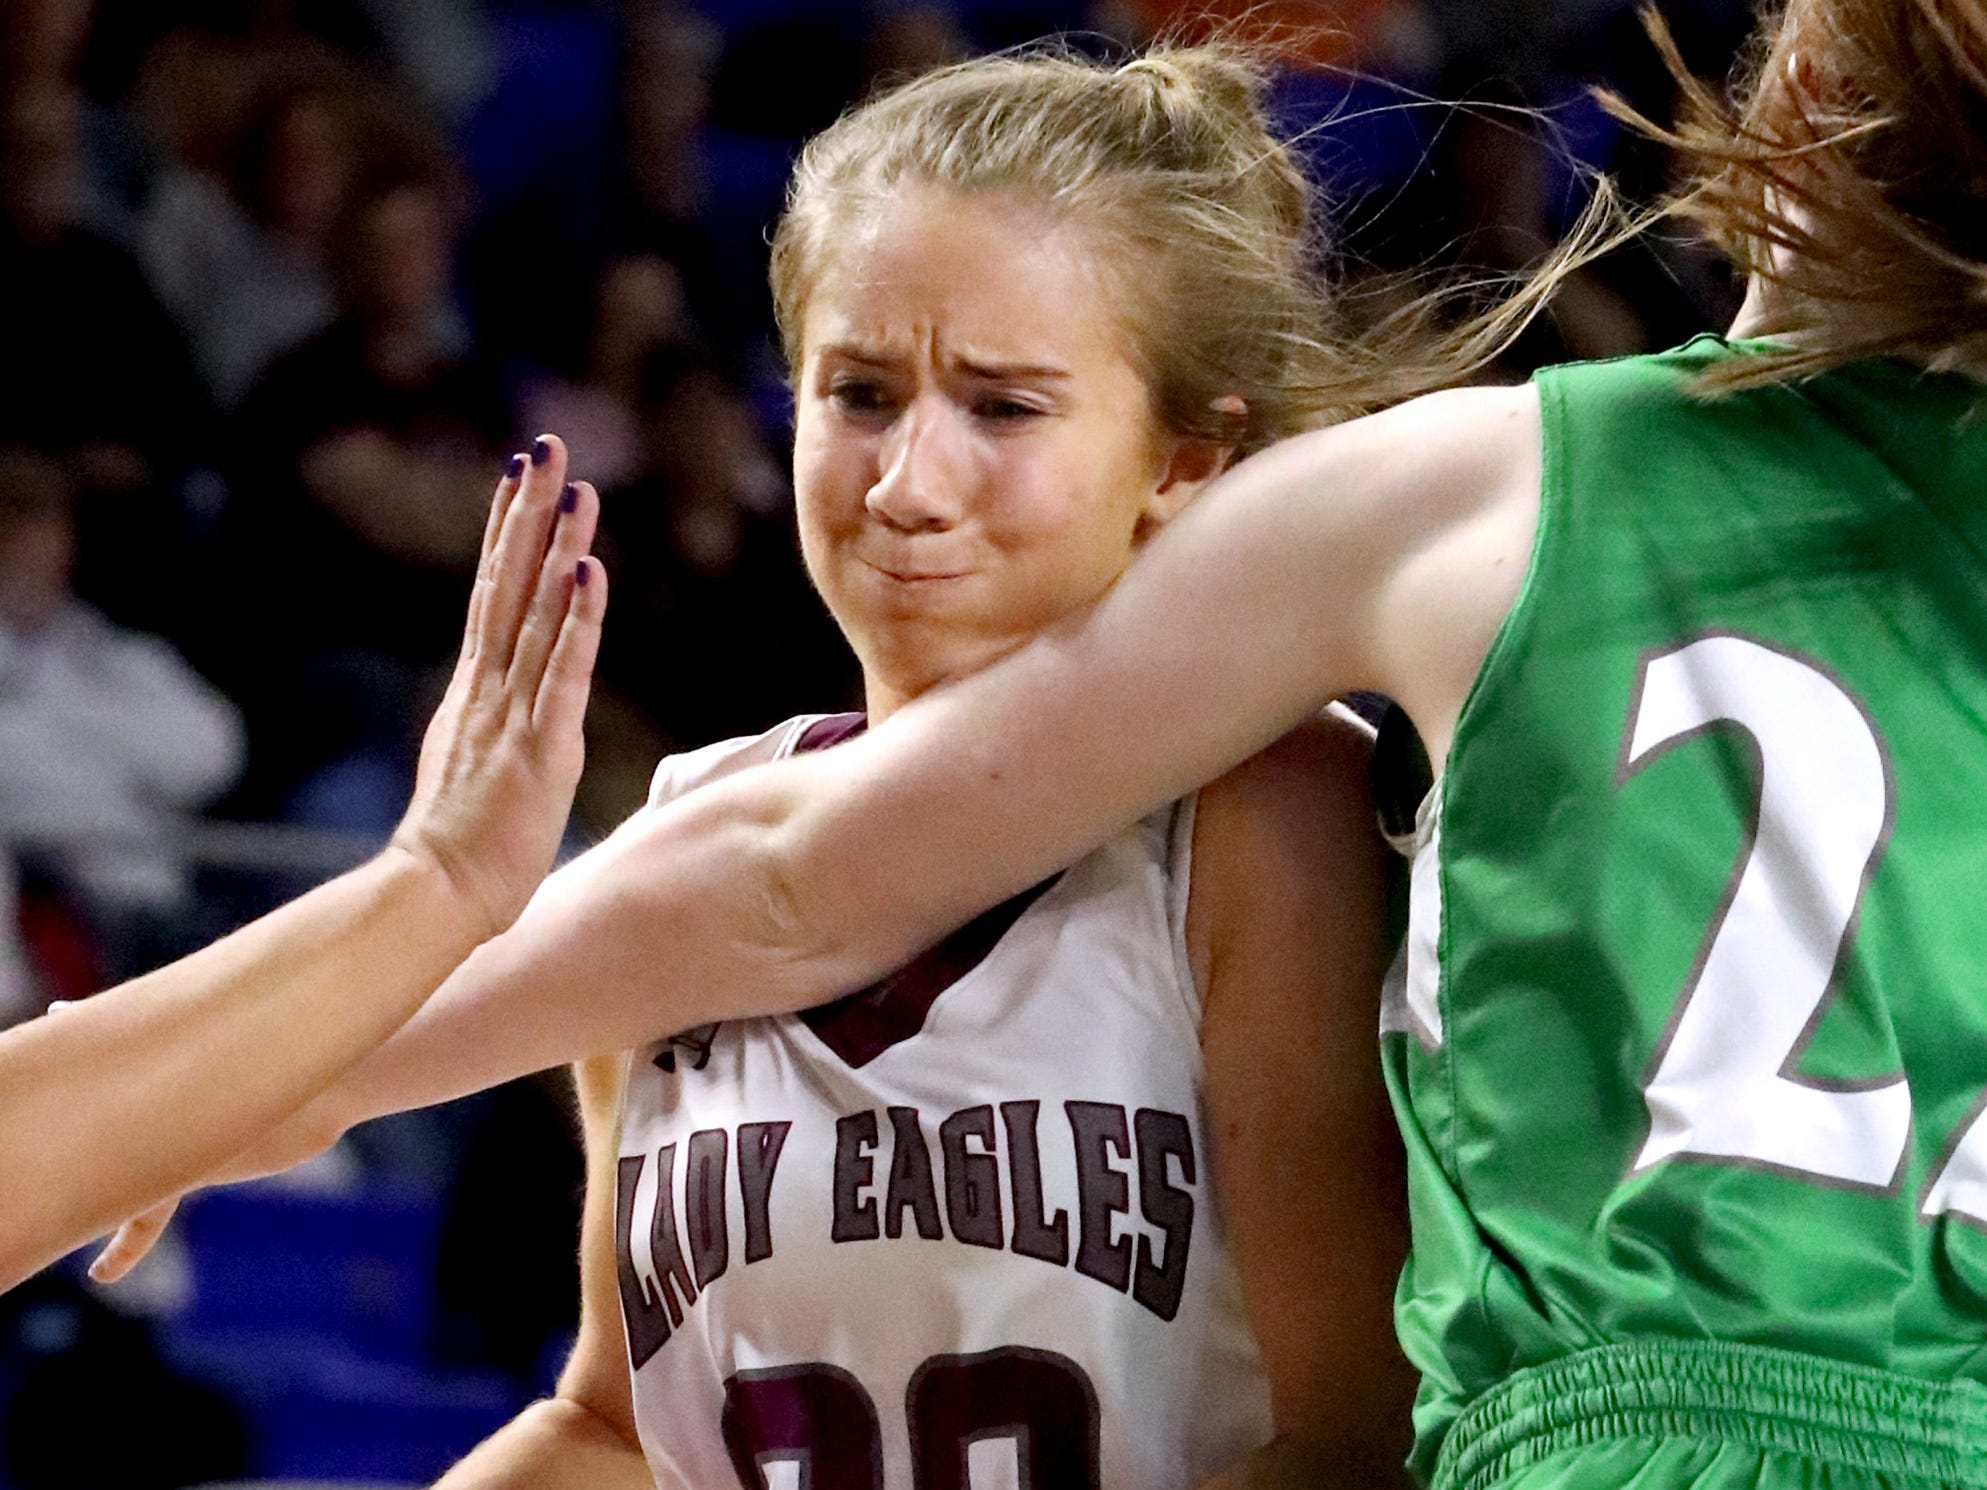 Eagleville's Haylee Ferguson (00) pushes toward the basket as Midway's Emily Cawood (22) guards her during the quarterfinal round of the TSSAA Div. 1 Class A Girls State Tournament, on Thursday, March 7, 2019, at Murphy Center in Murfreesboro, Tenn.